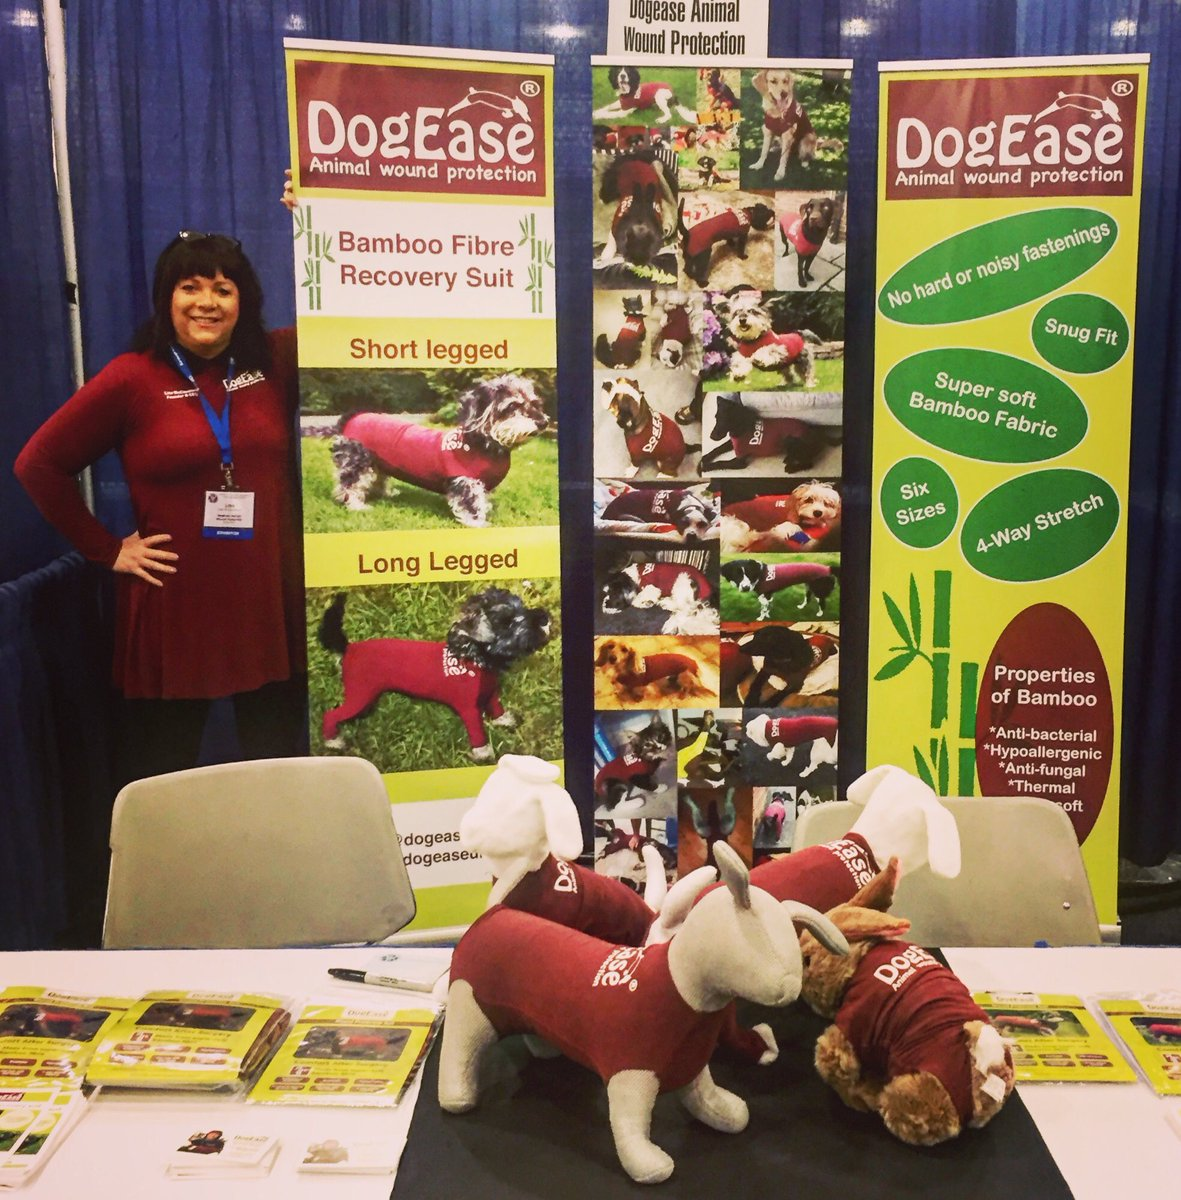 @DogHourNI just finished my conference in #Sandiego #doghourni #dogease #bamboo #dogs #noconezone